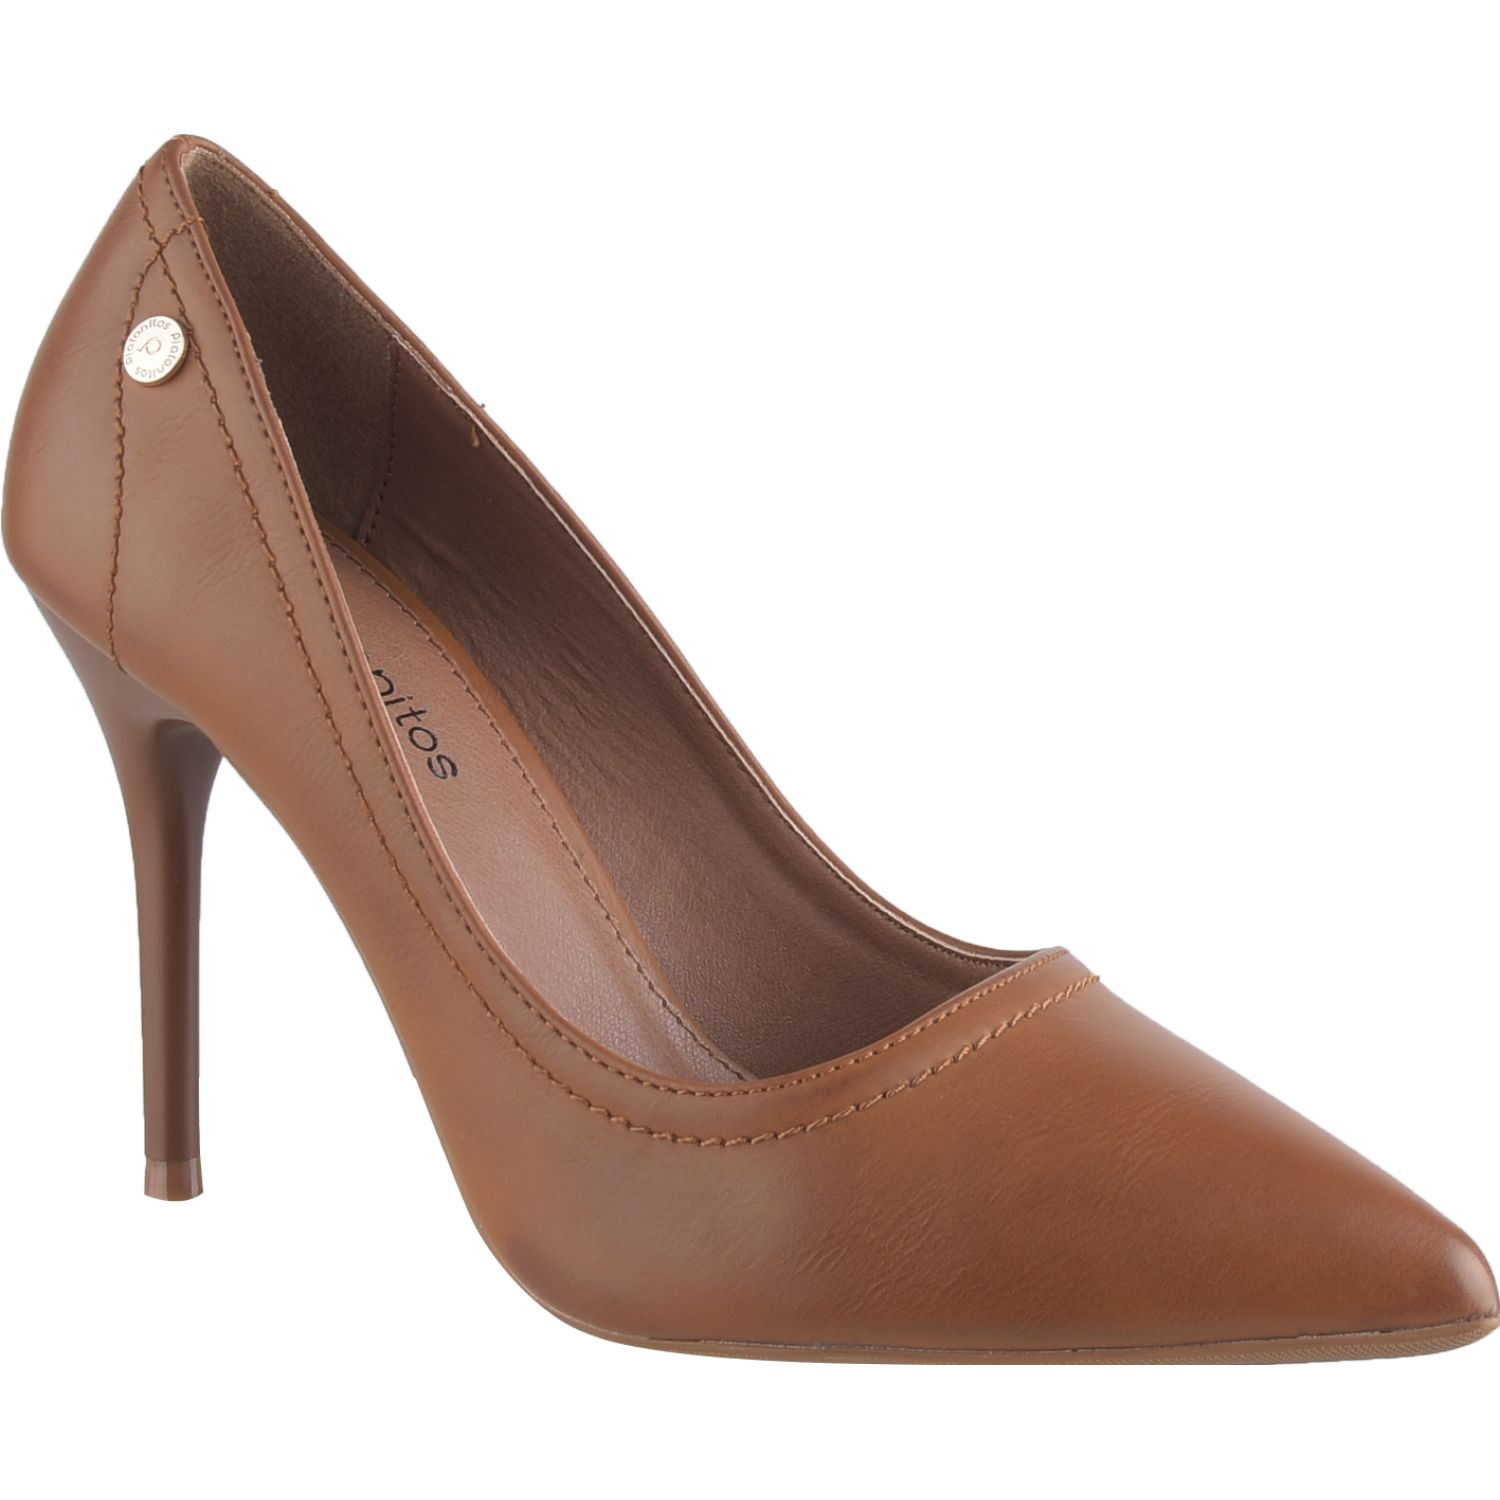 Platanitos Cv 6791 Camel Estiletos y pumps